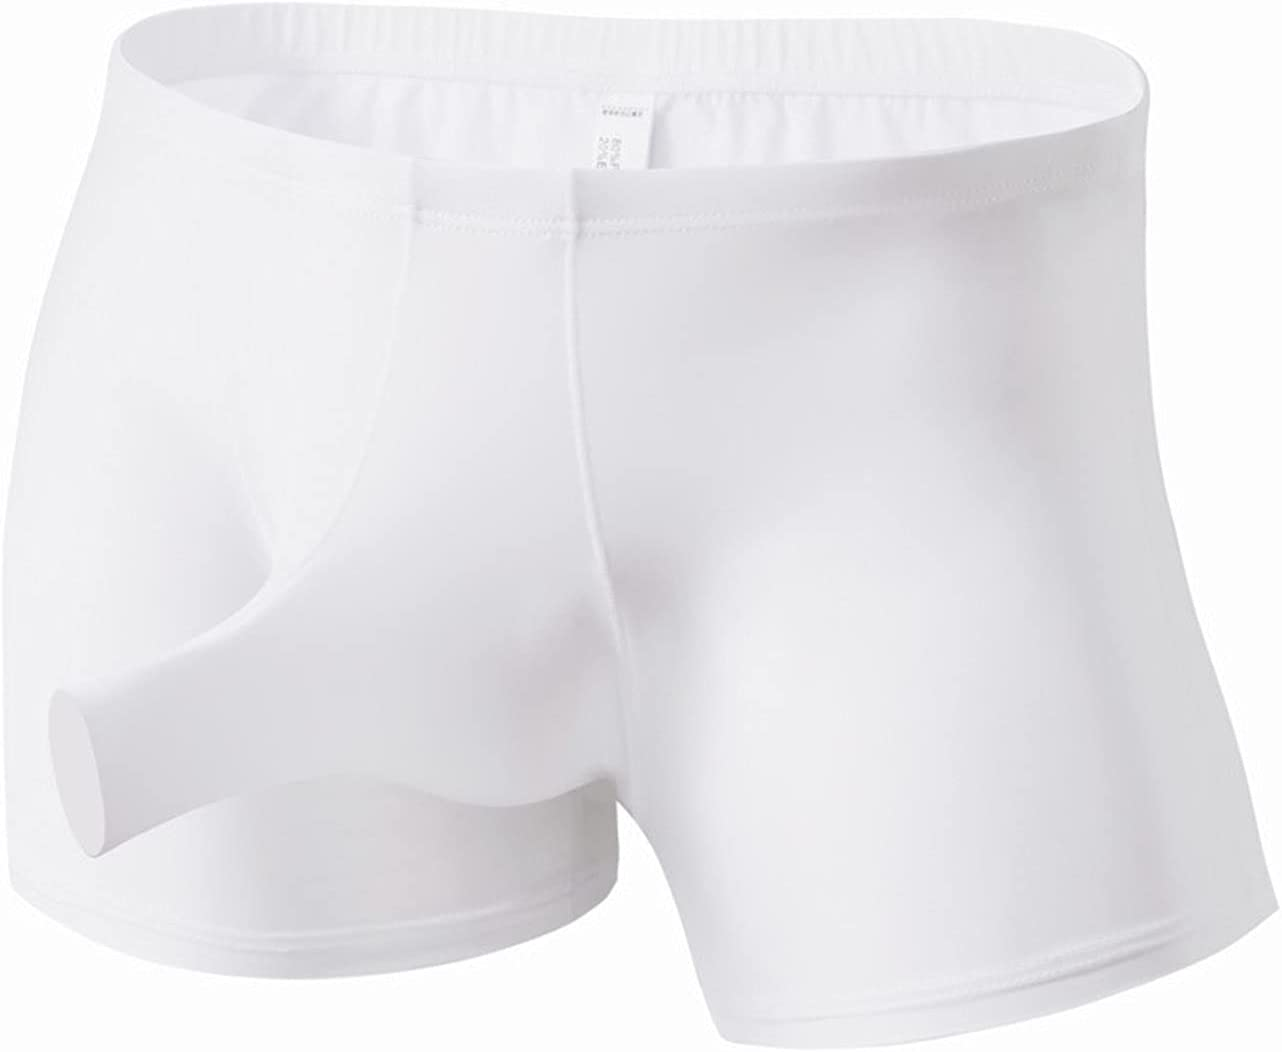 Mens Ice Silk Elephant Nose Boxer Briefs U Convex Breathable Soft Underwear Sexy G-String Thong Underpants with Pouch (White,XX-Large)